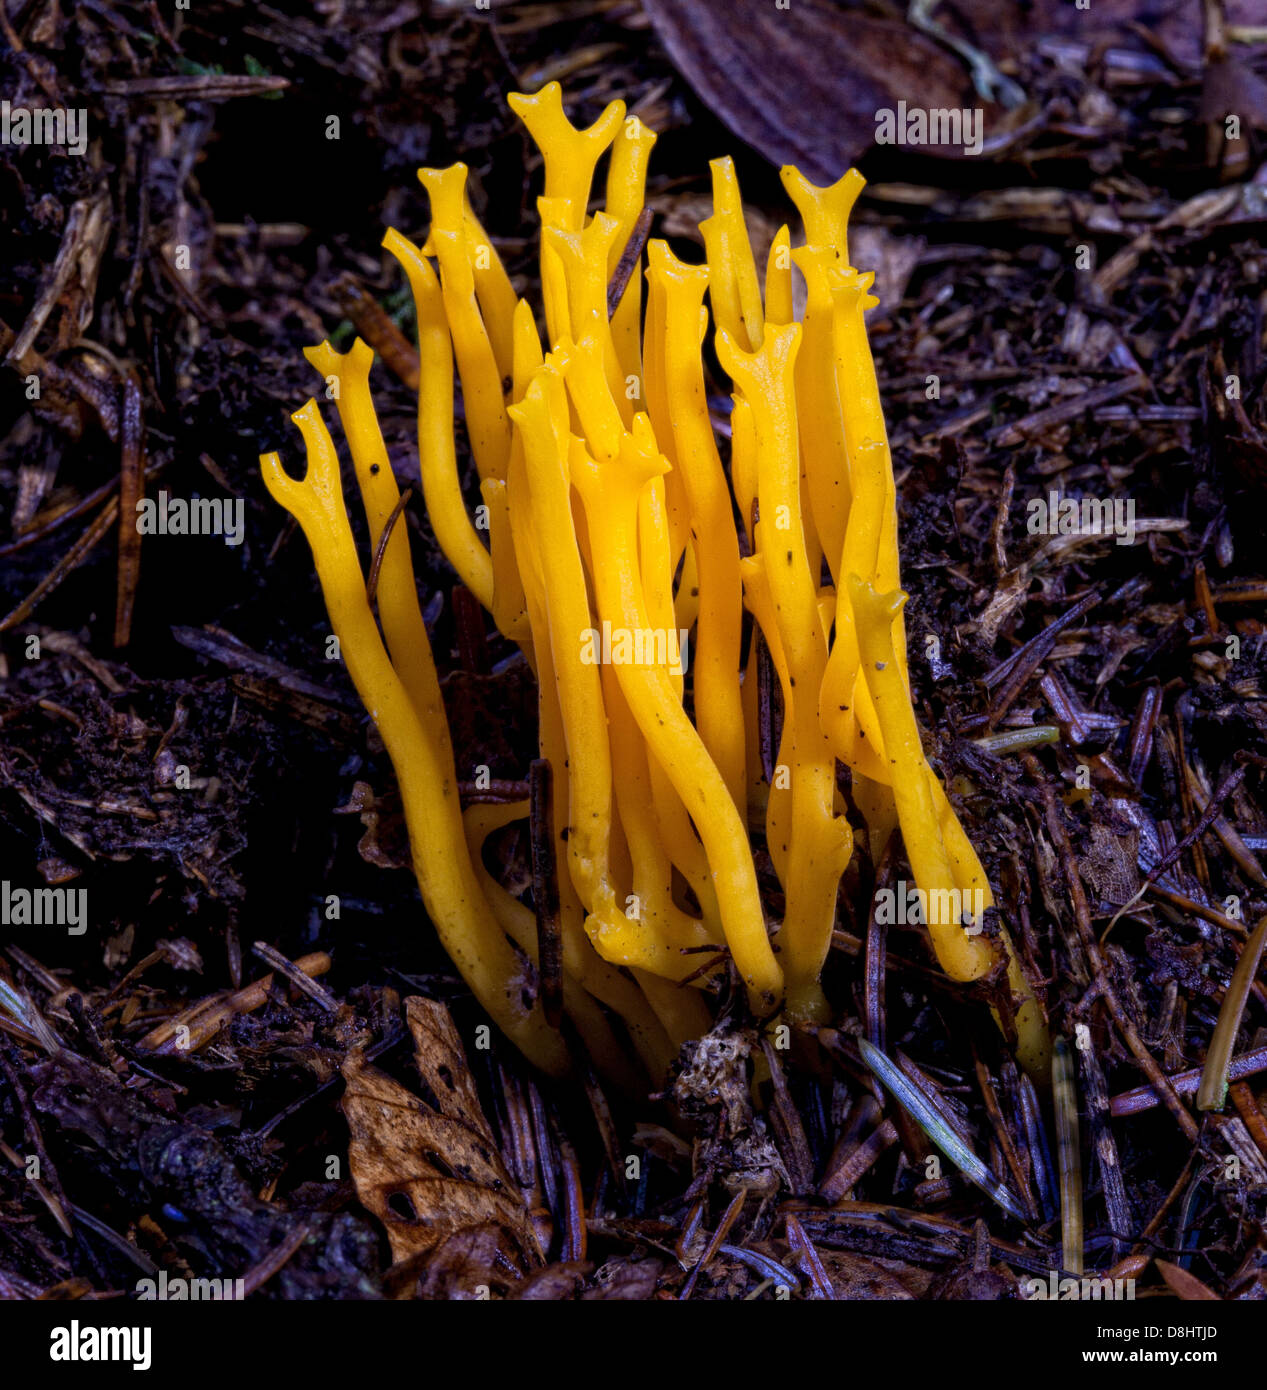 Calocera viscosa, commonly known as the yellow stagshorn fungi - Stock Image